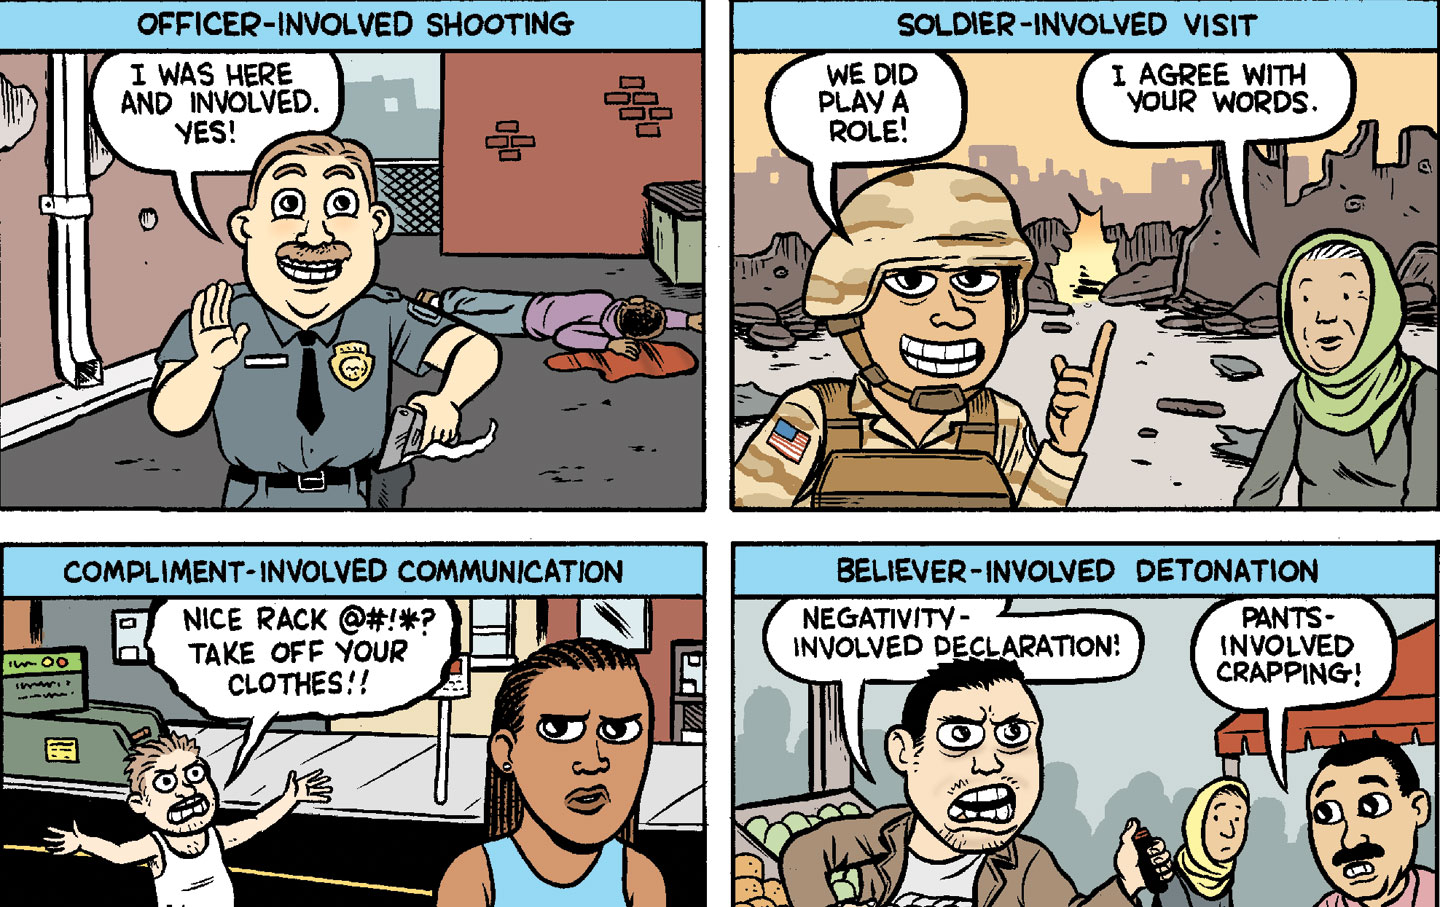 Comix_Bors_OfficerInvolved_img